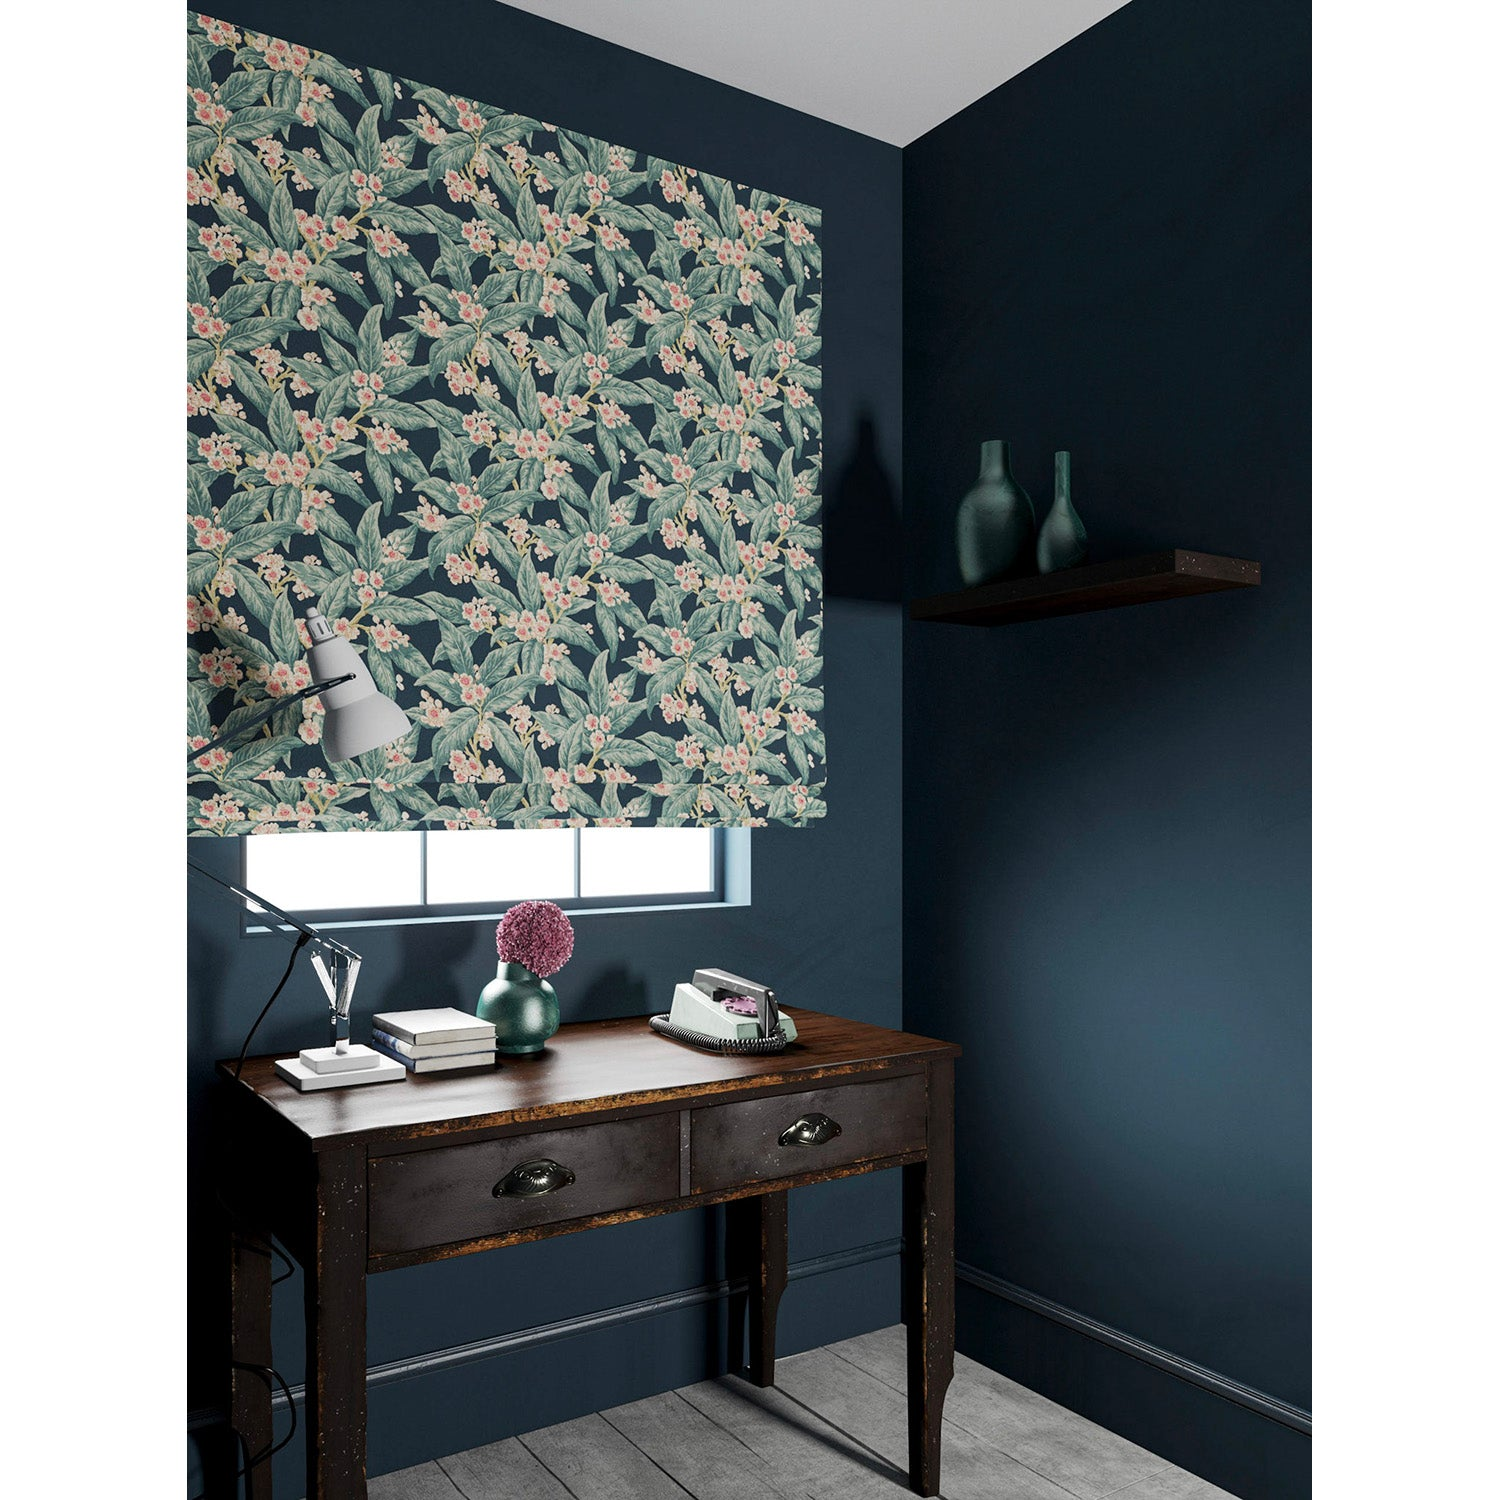 Velvet blind in a pink and blue coloured velvet fabric with a leaf and blossom design and stain resistant finish